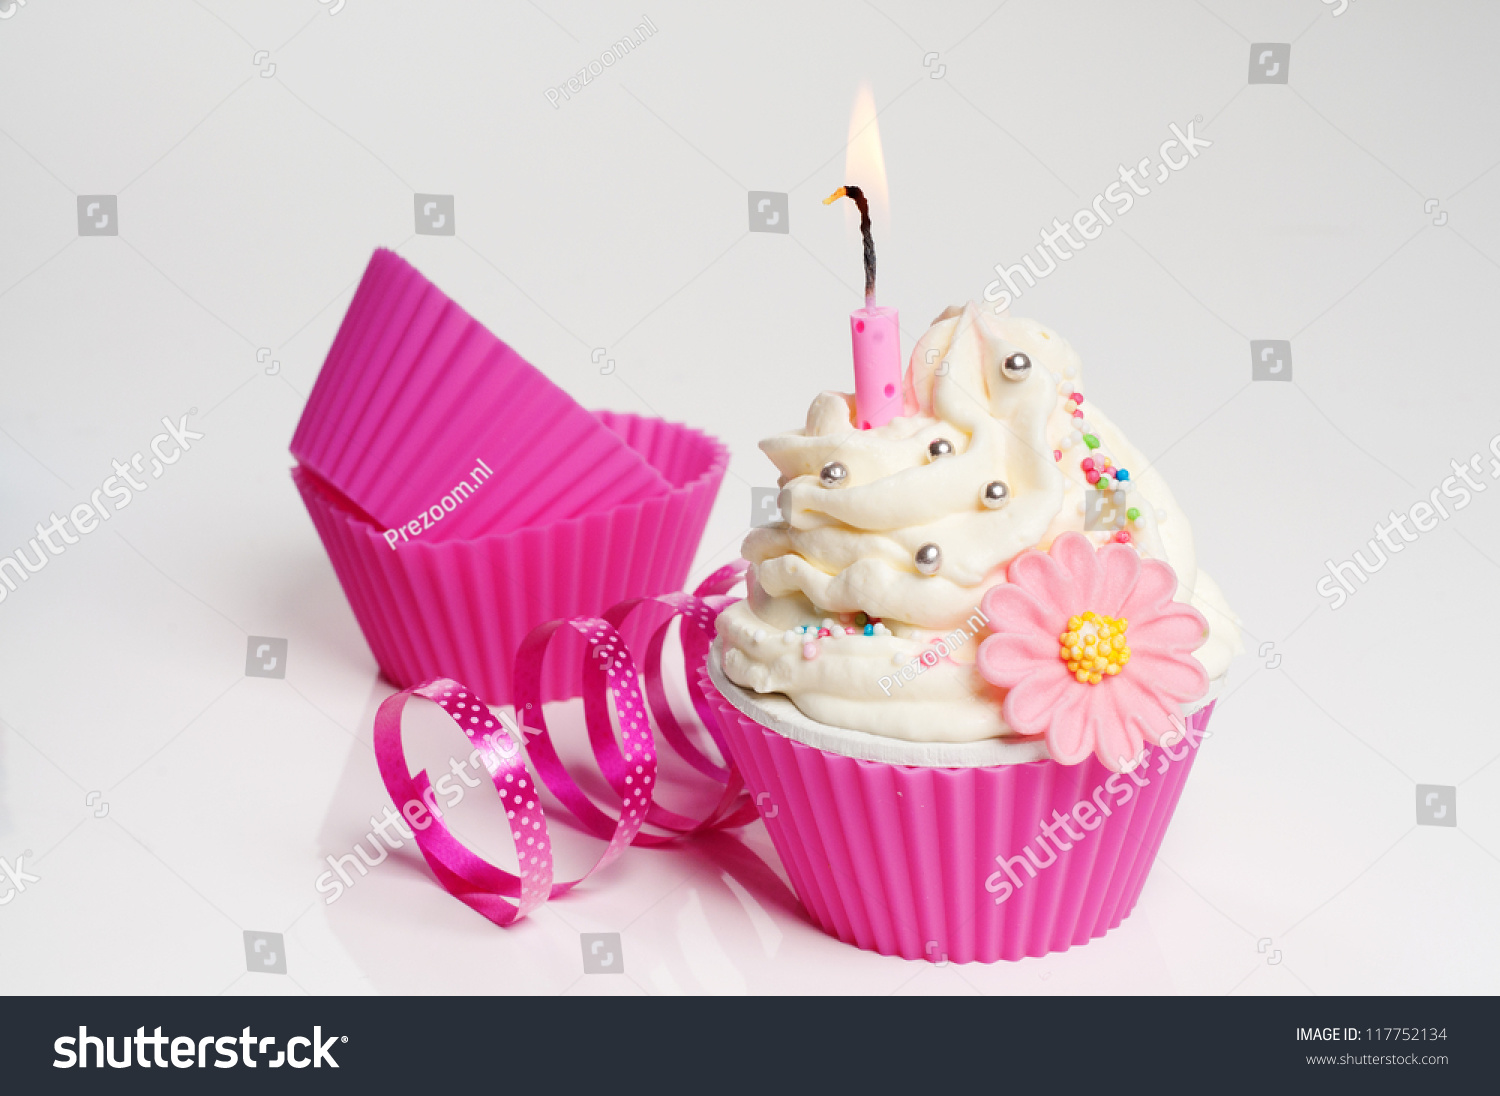 Festive Flower Cupcake Candle Birthday Party Stock Photo Edit Now